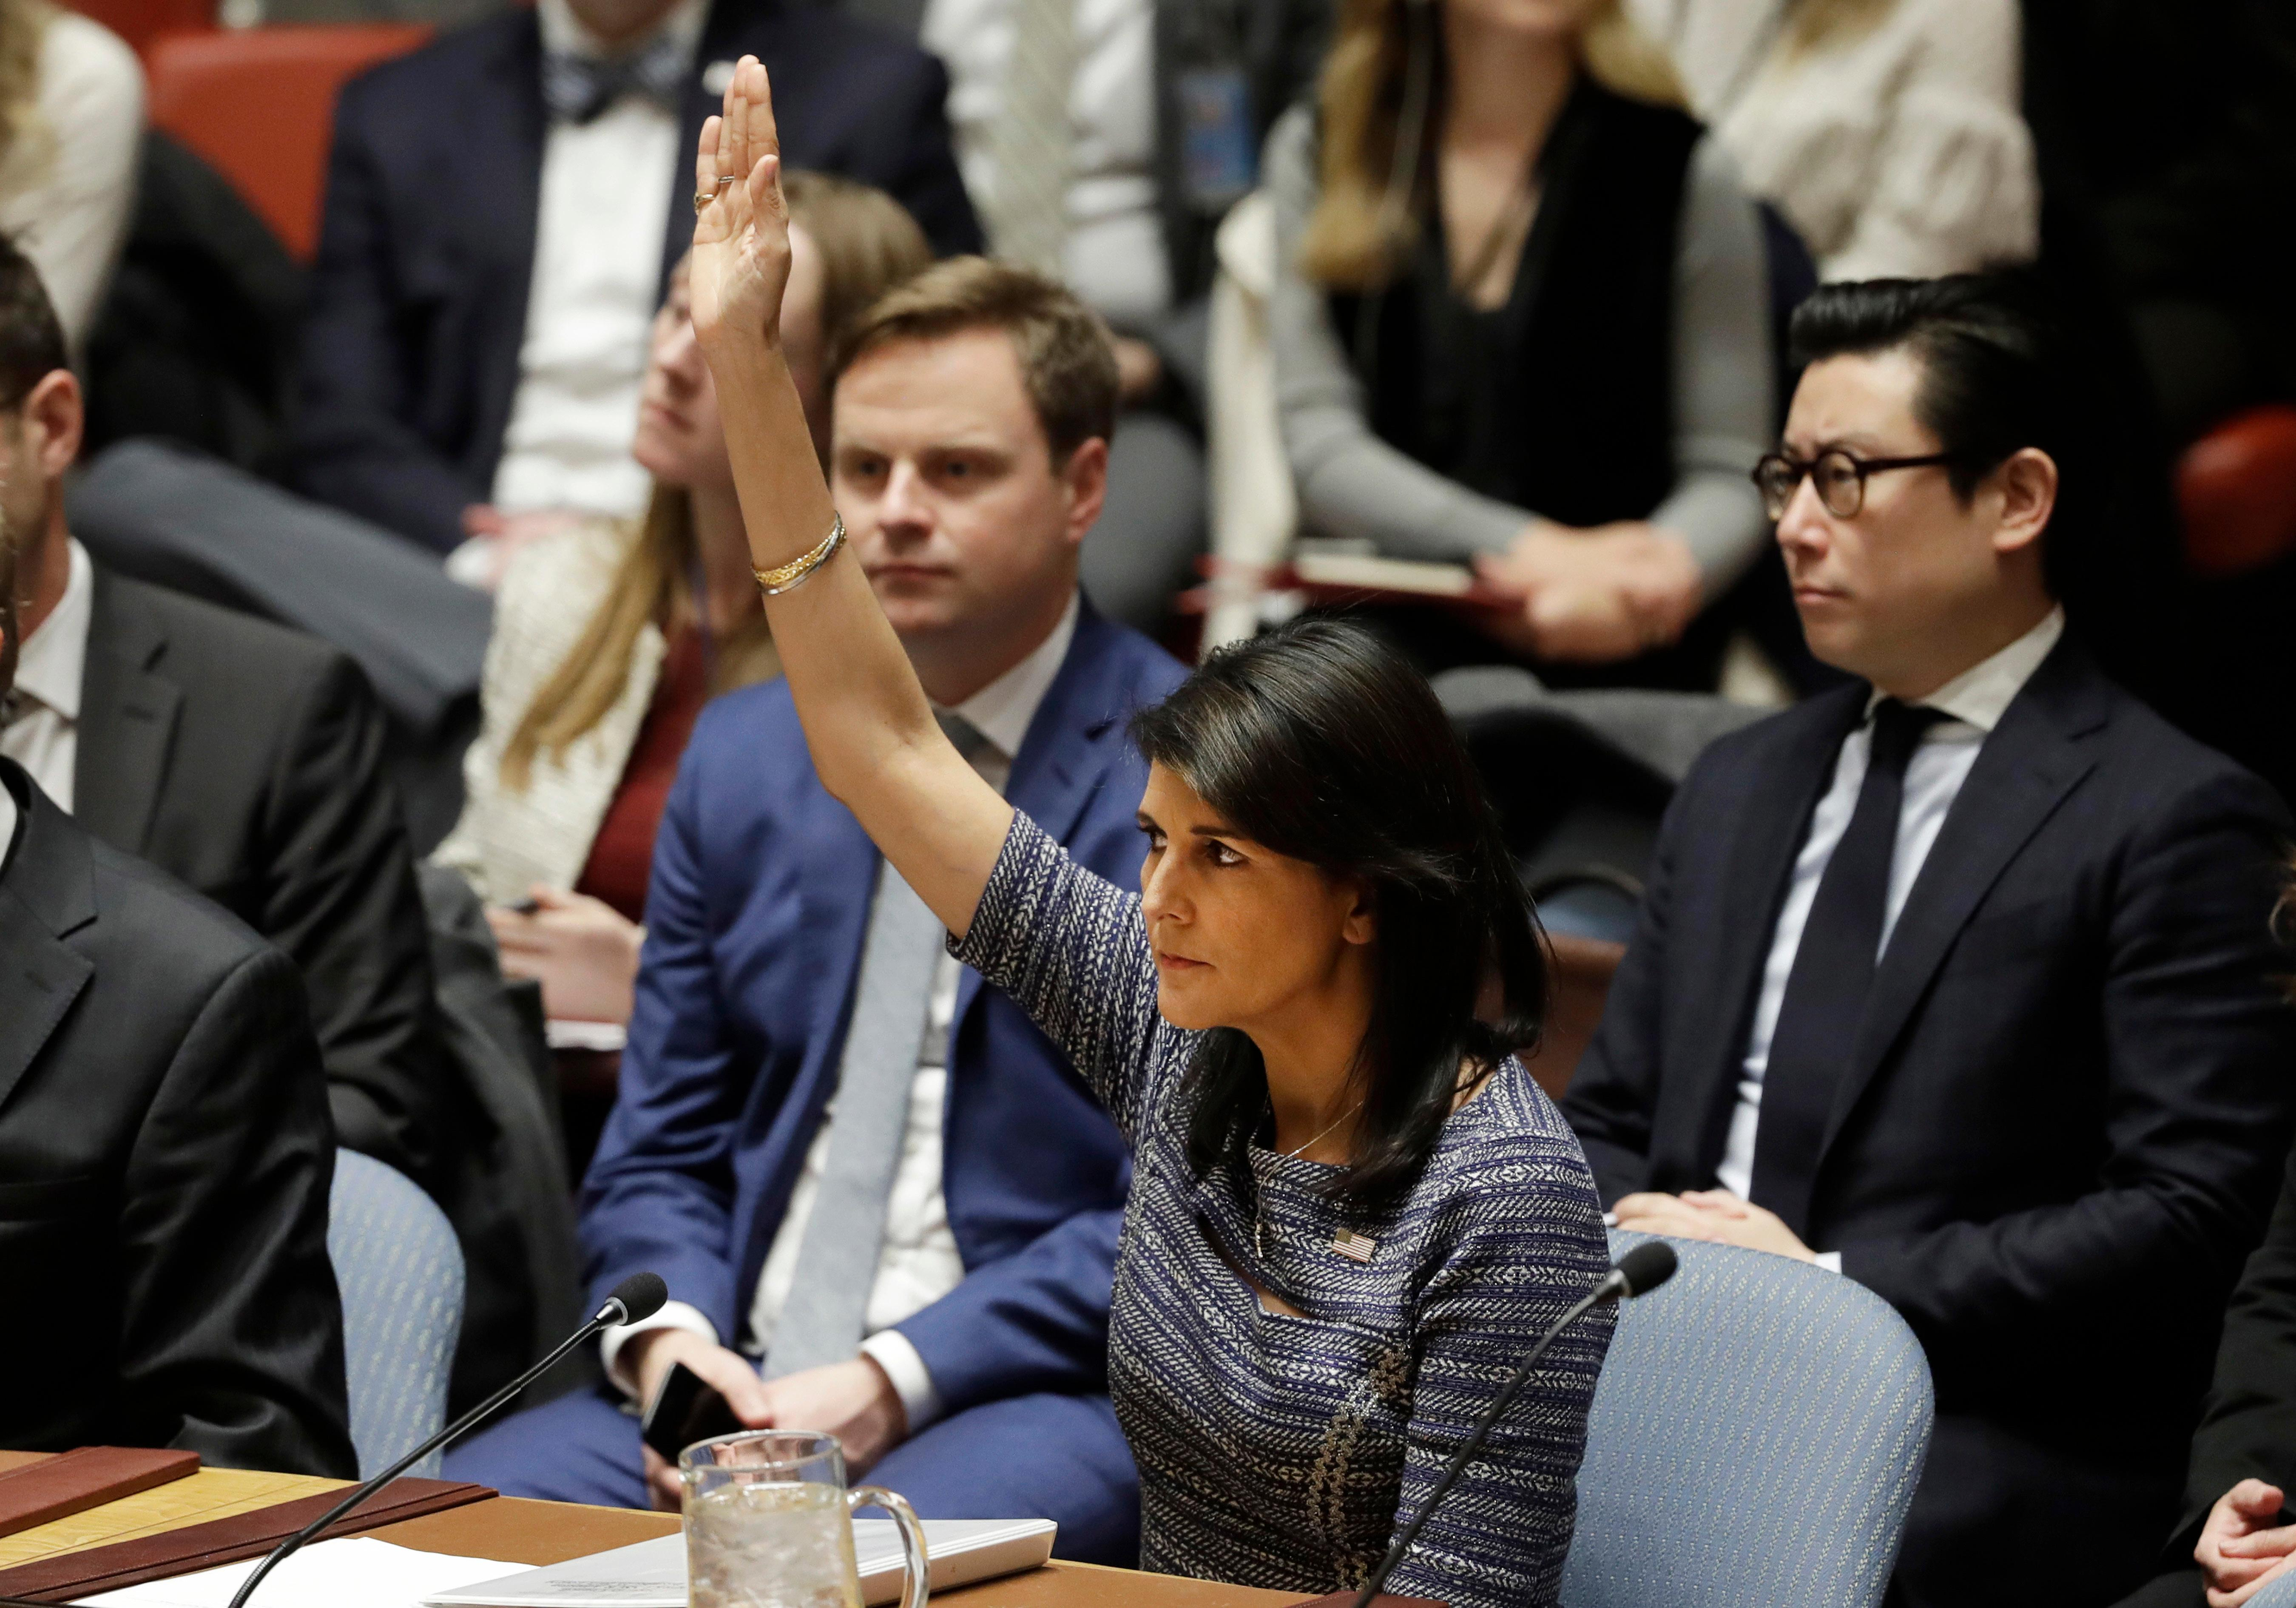 U.S. Ambassador Nikki Haley votes in favor of a resolution, Friday, Dec. 22, 2017, at United Nations headquarters. The Security Council is voting on proposed new sanctions against North Korea, including sharply lower limits on its refined oil imports, the return home of all North Koreans working overseas within 12 months, and a crackdown on the country's shipping. (AP Photo/Mark Lennihan)